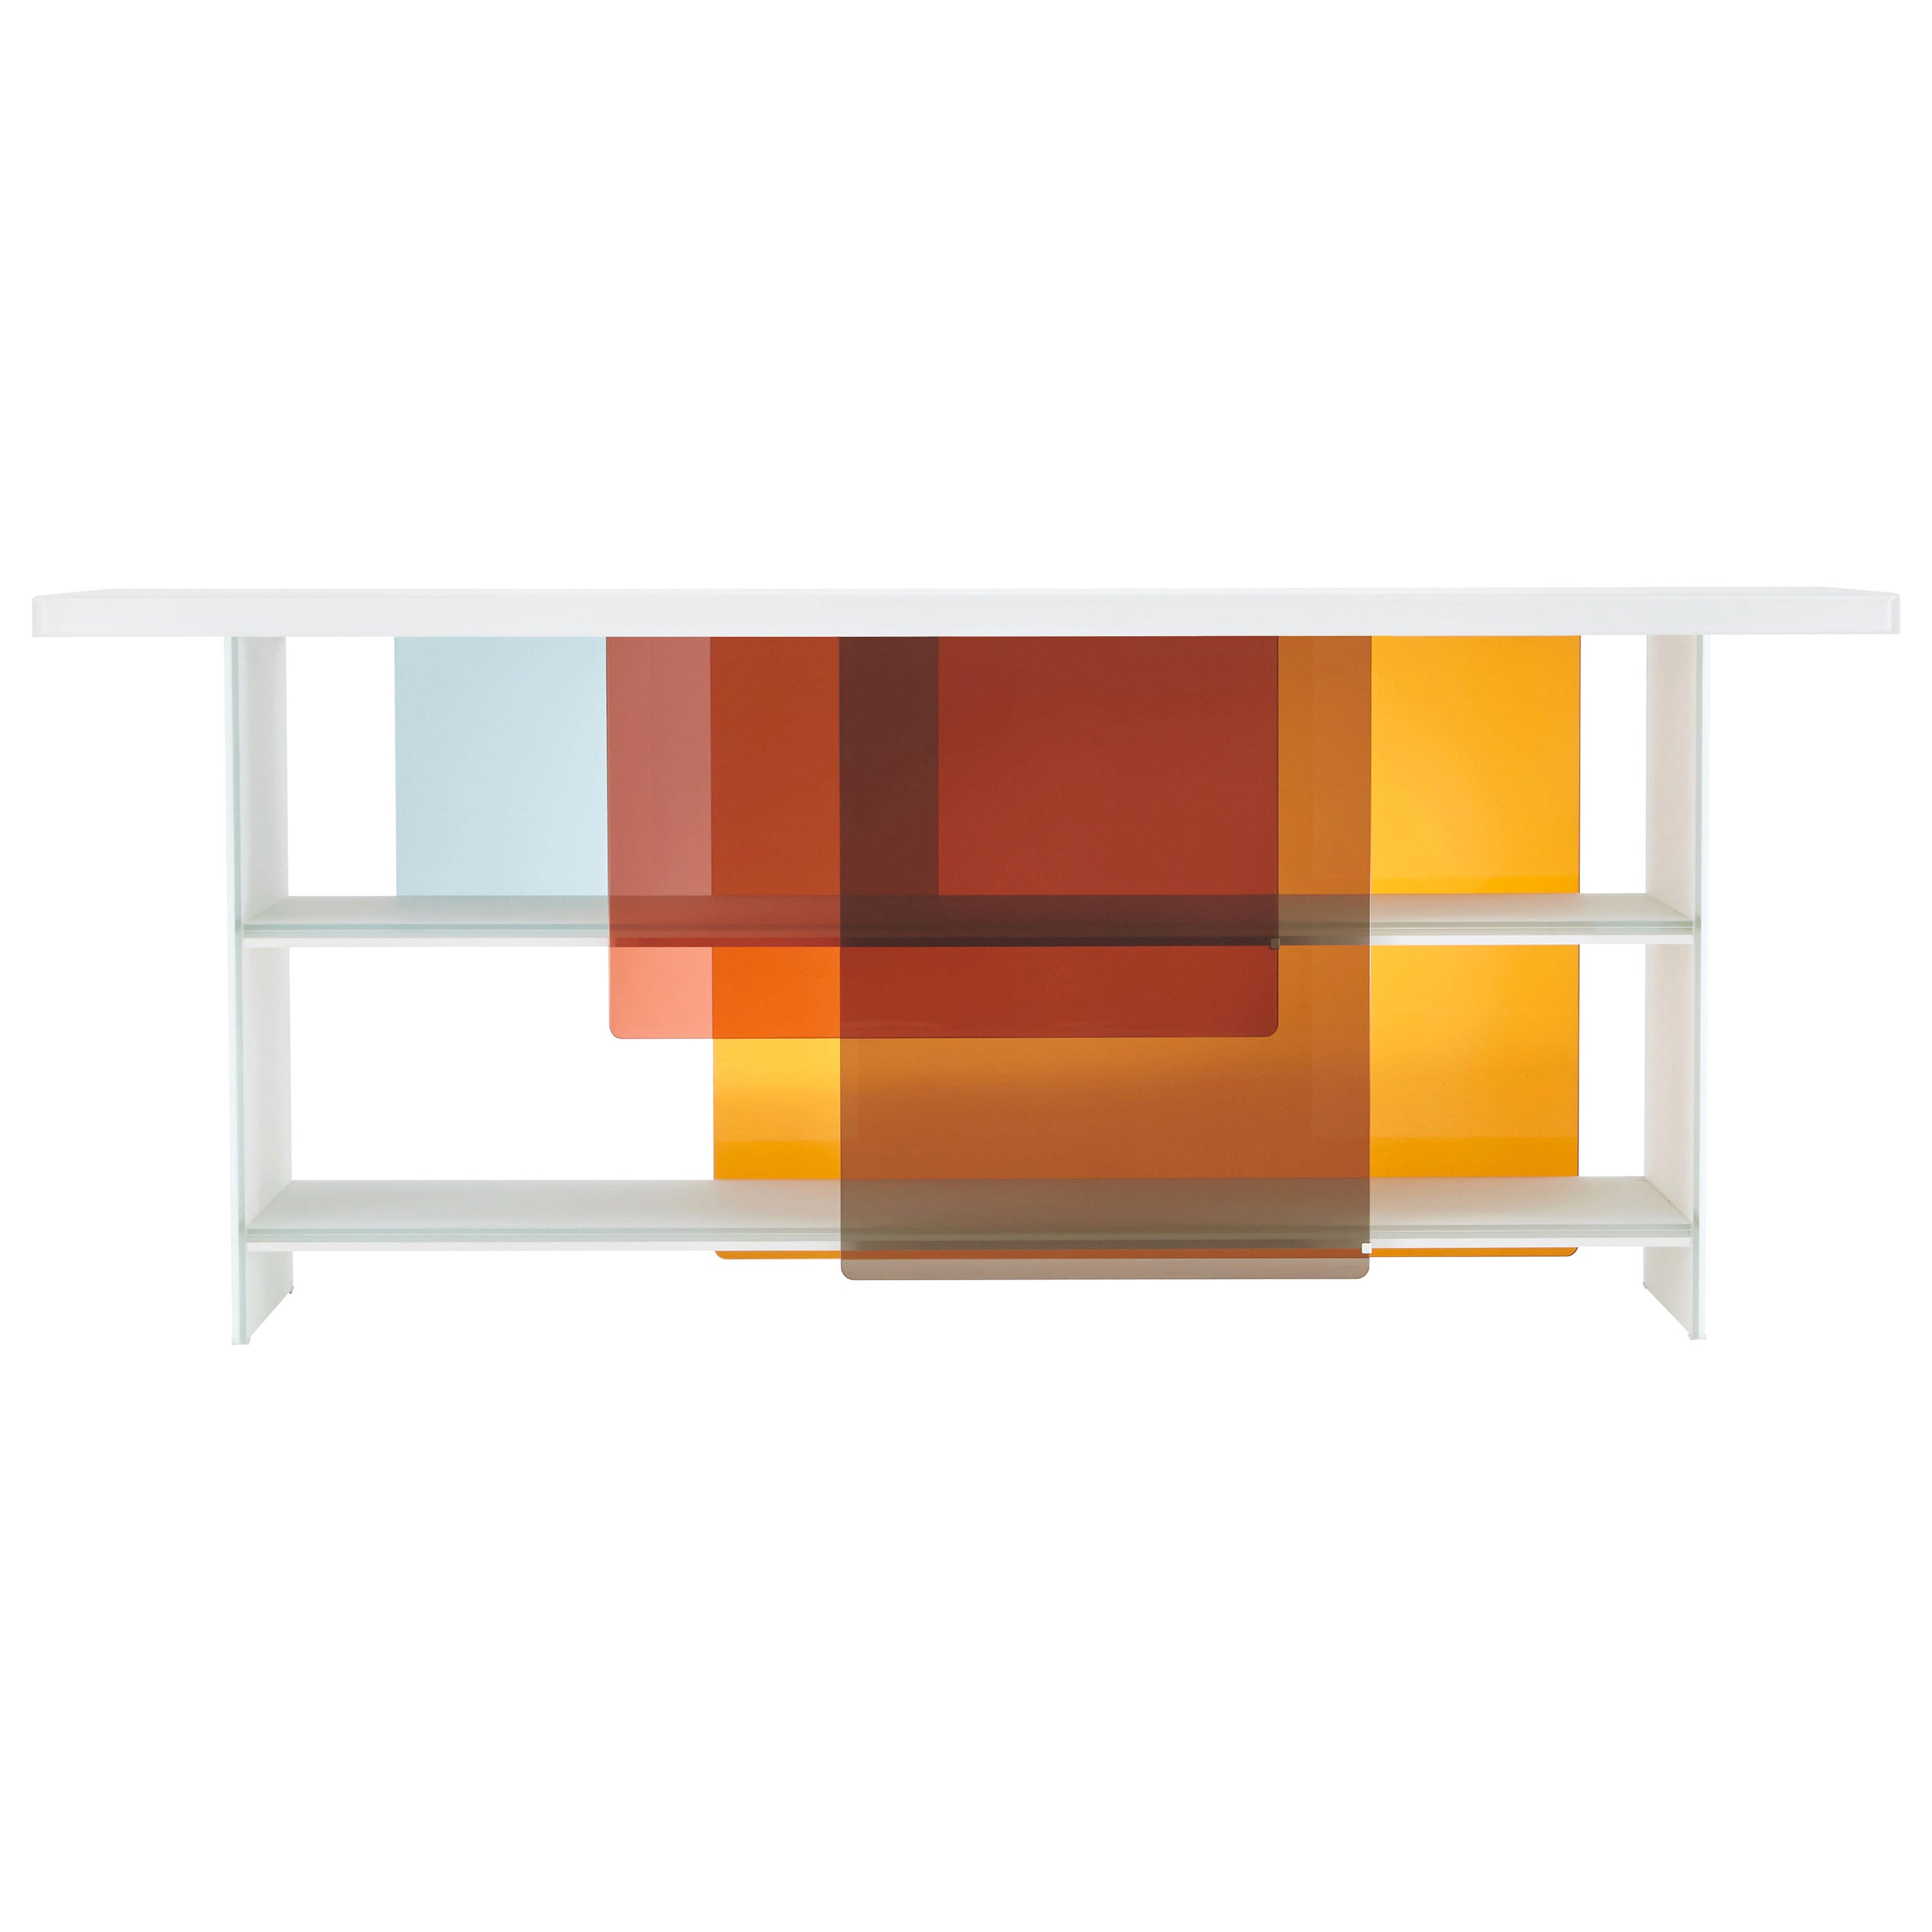 Layers Large Glass Bookshelves, by Design Nendo from Glas Italia